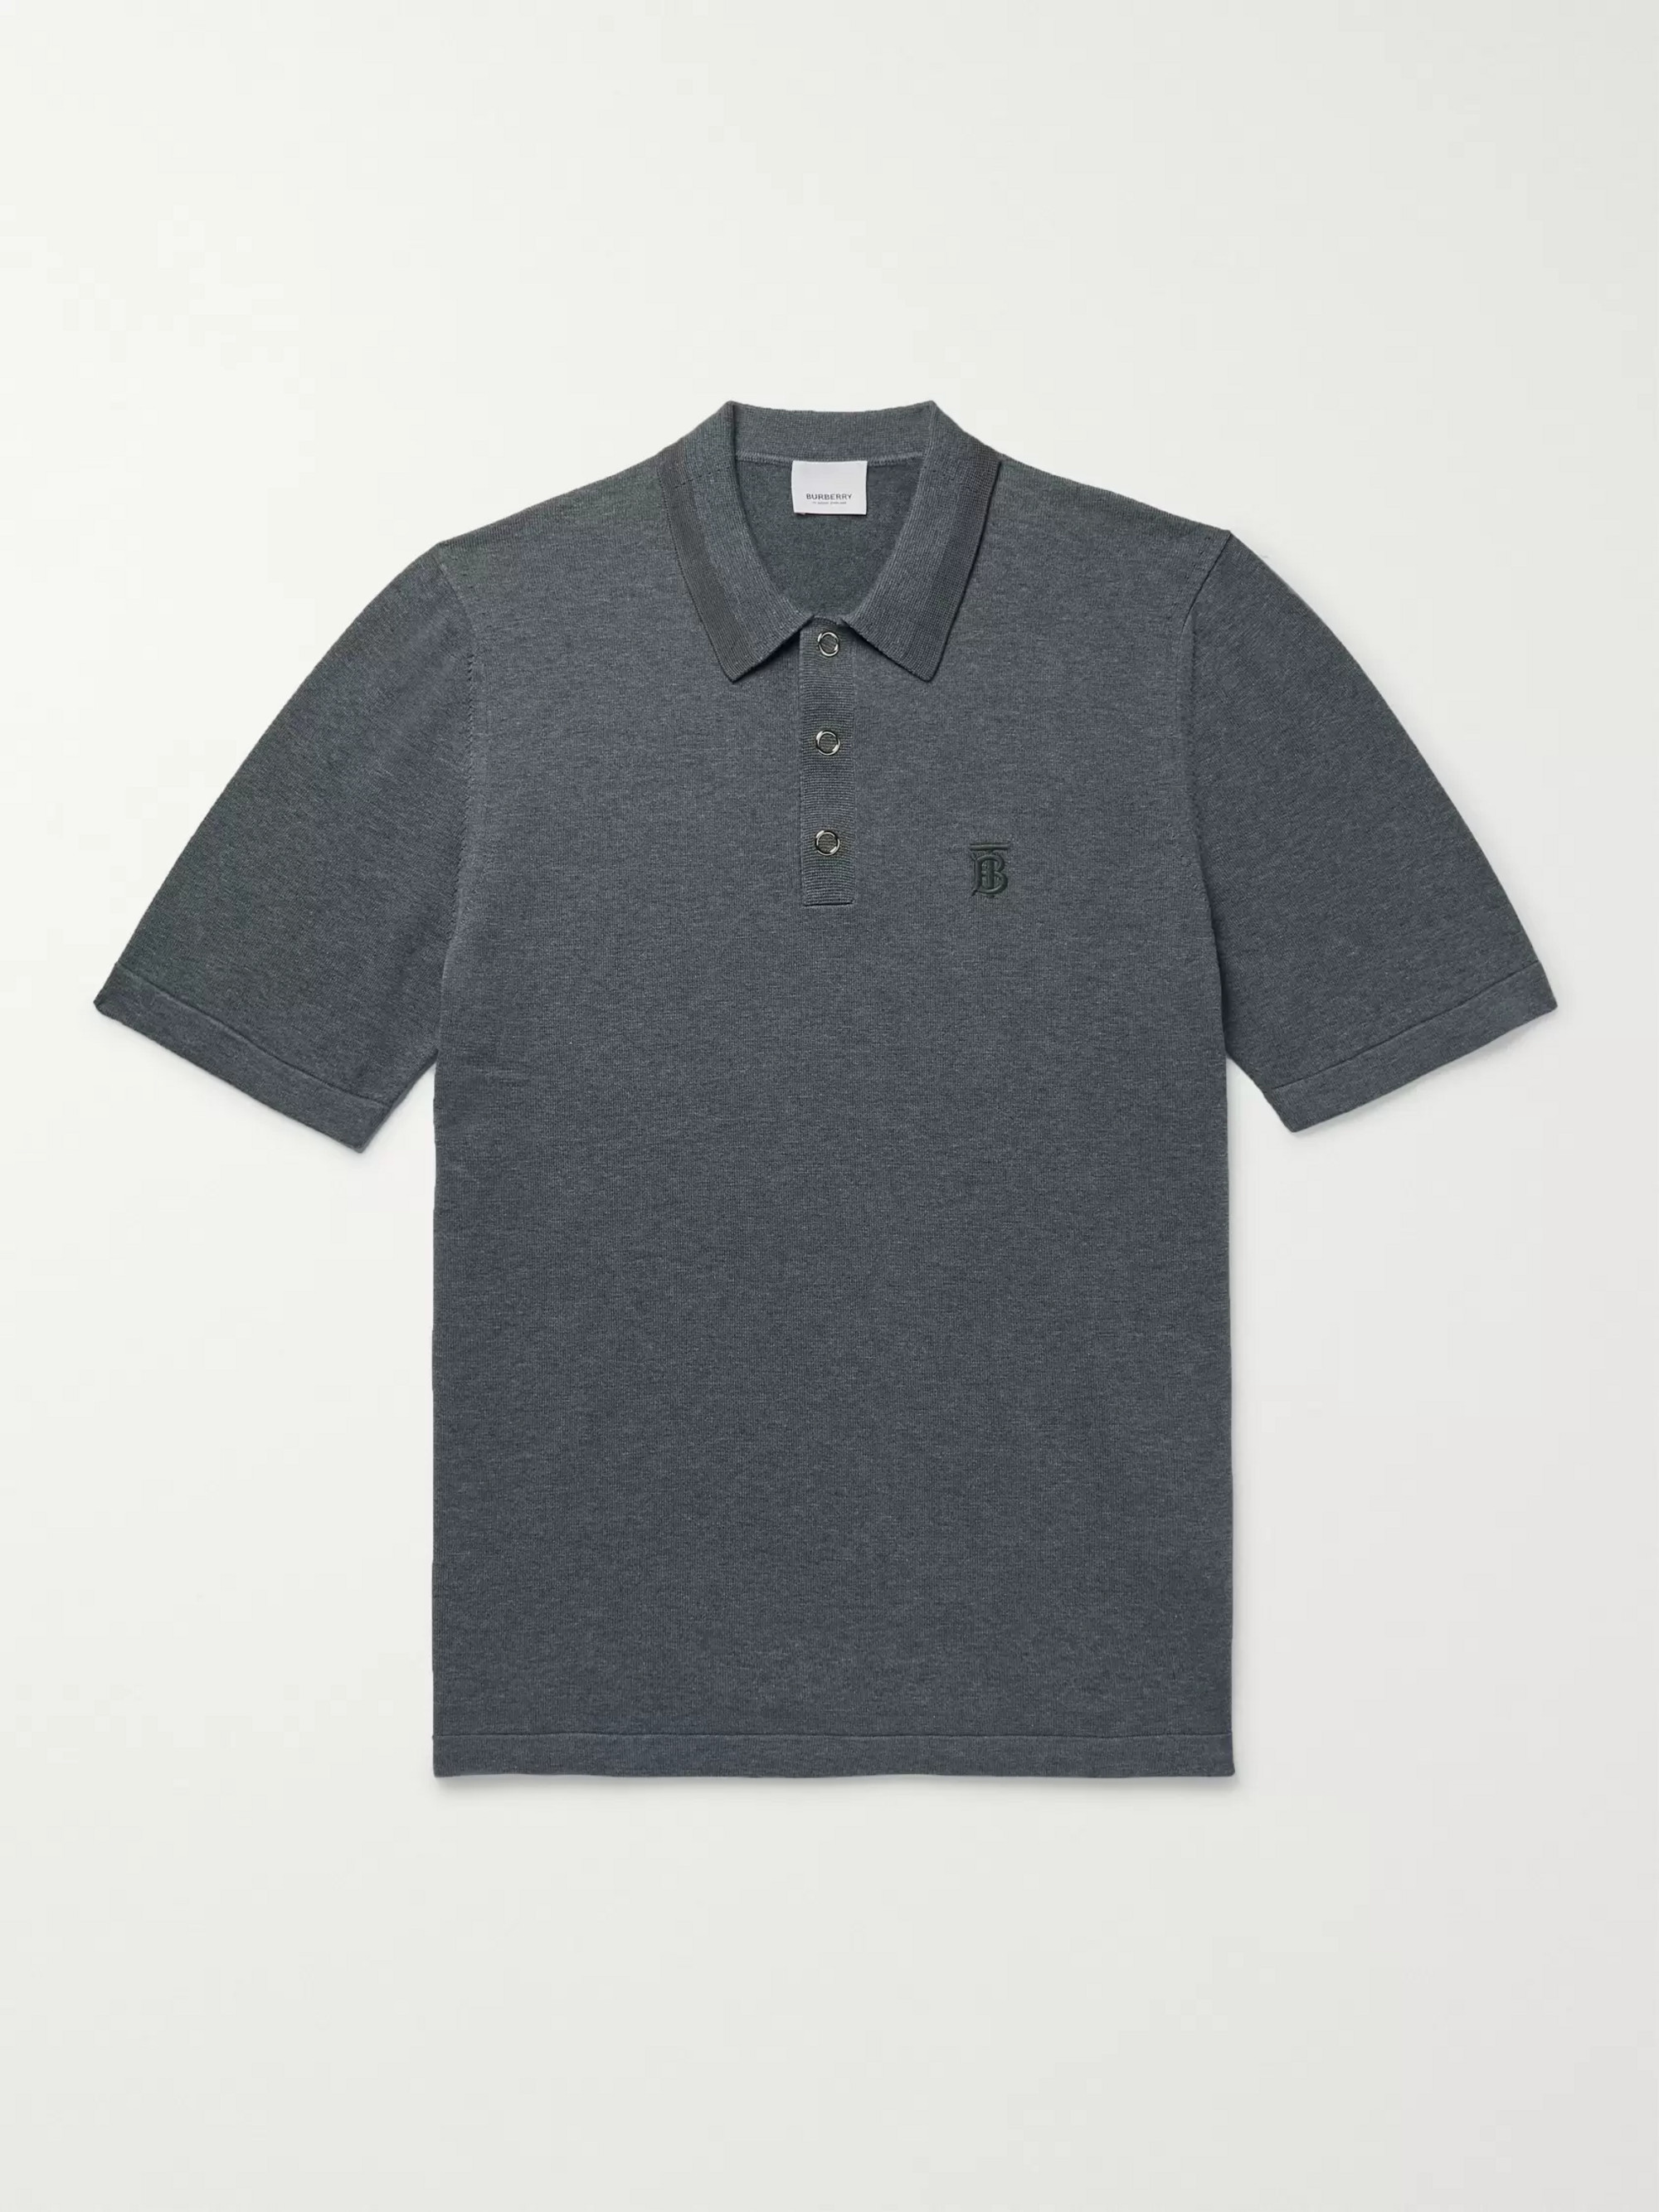 Burberry Contrast-Tipped Mélange Cotton Polo Shirt